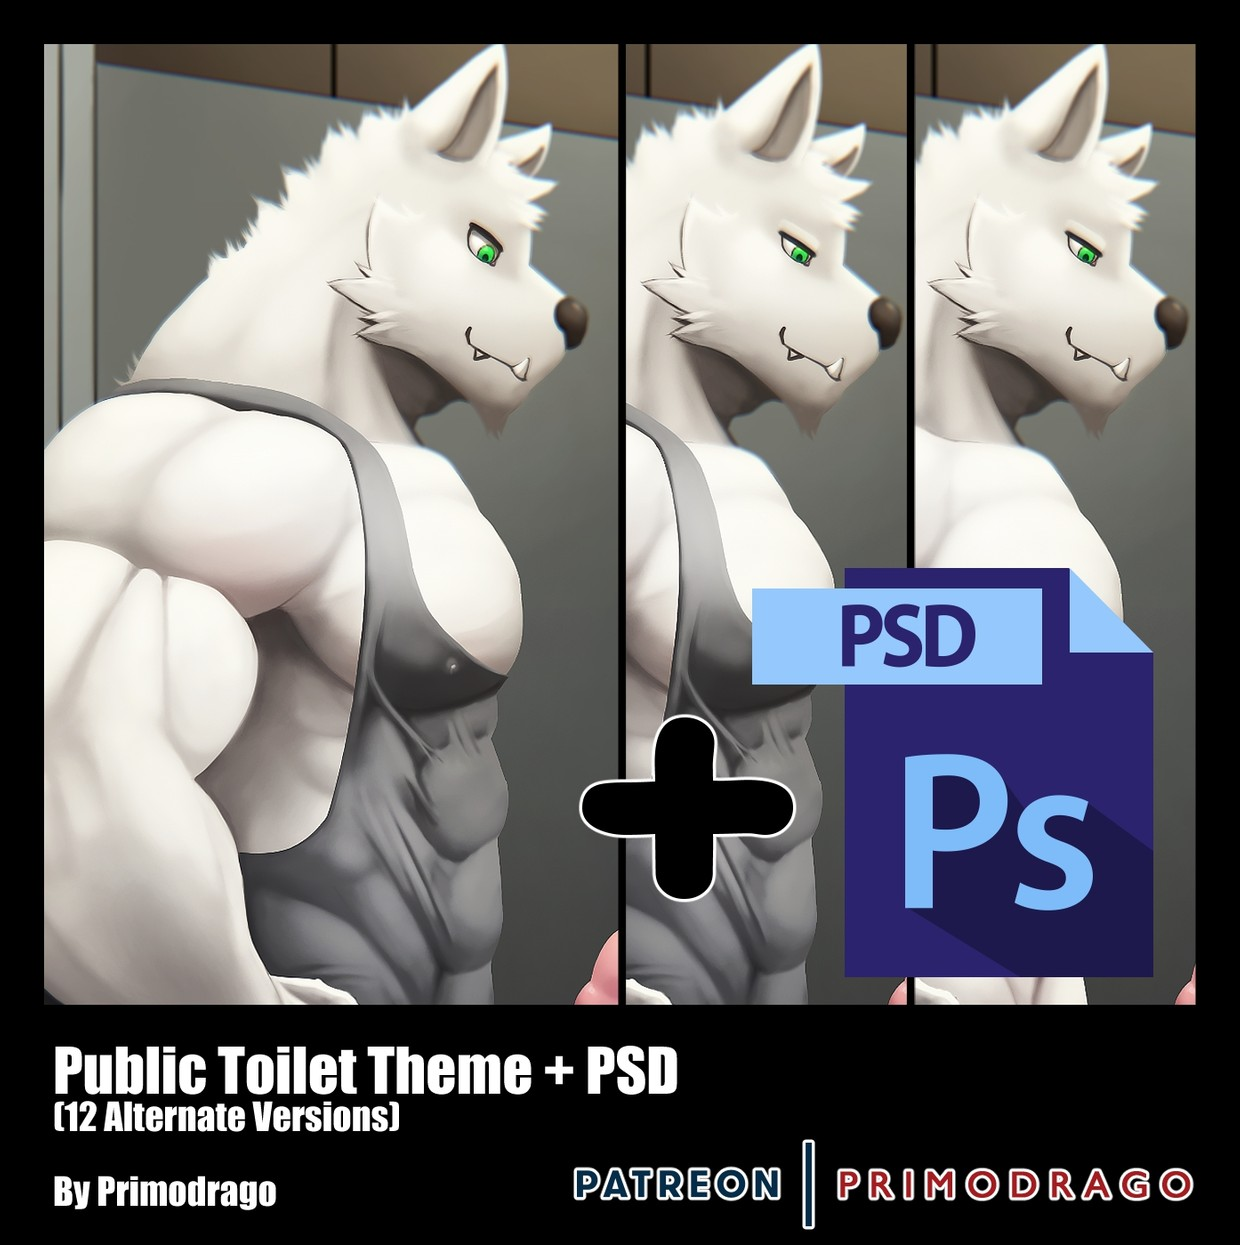 Public Toilet Theme + PSD File